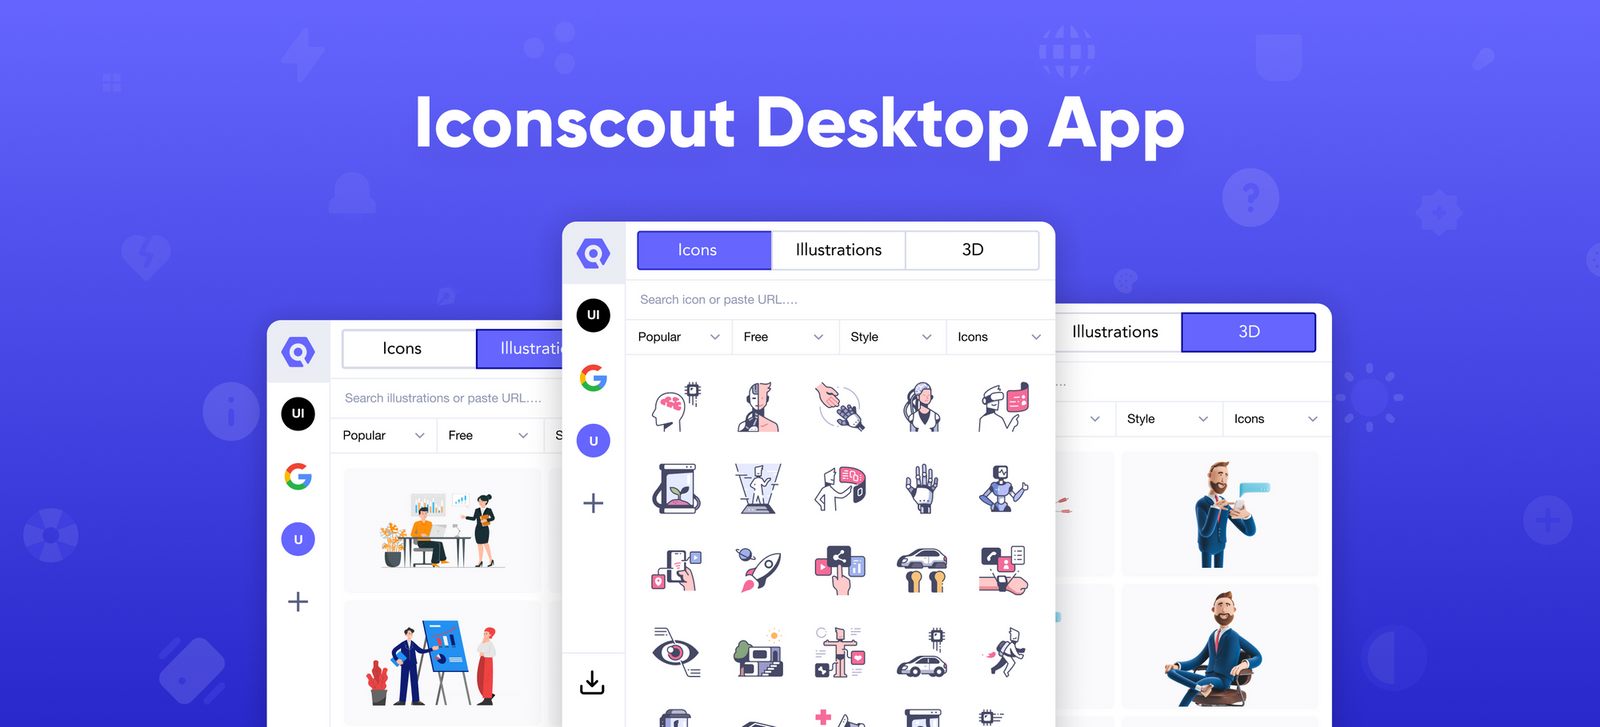 Introducing Iconscout Desktop Application for Mac and Windows